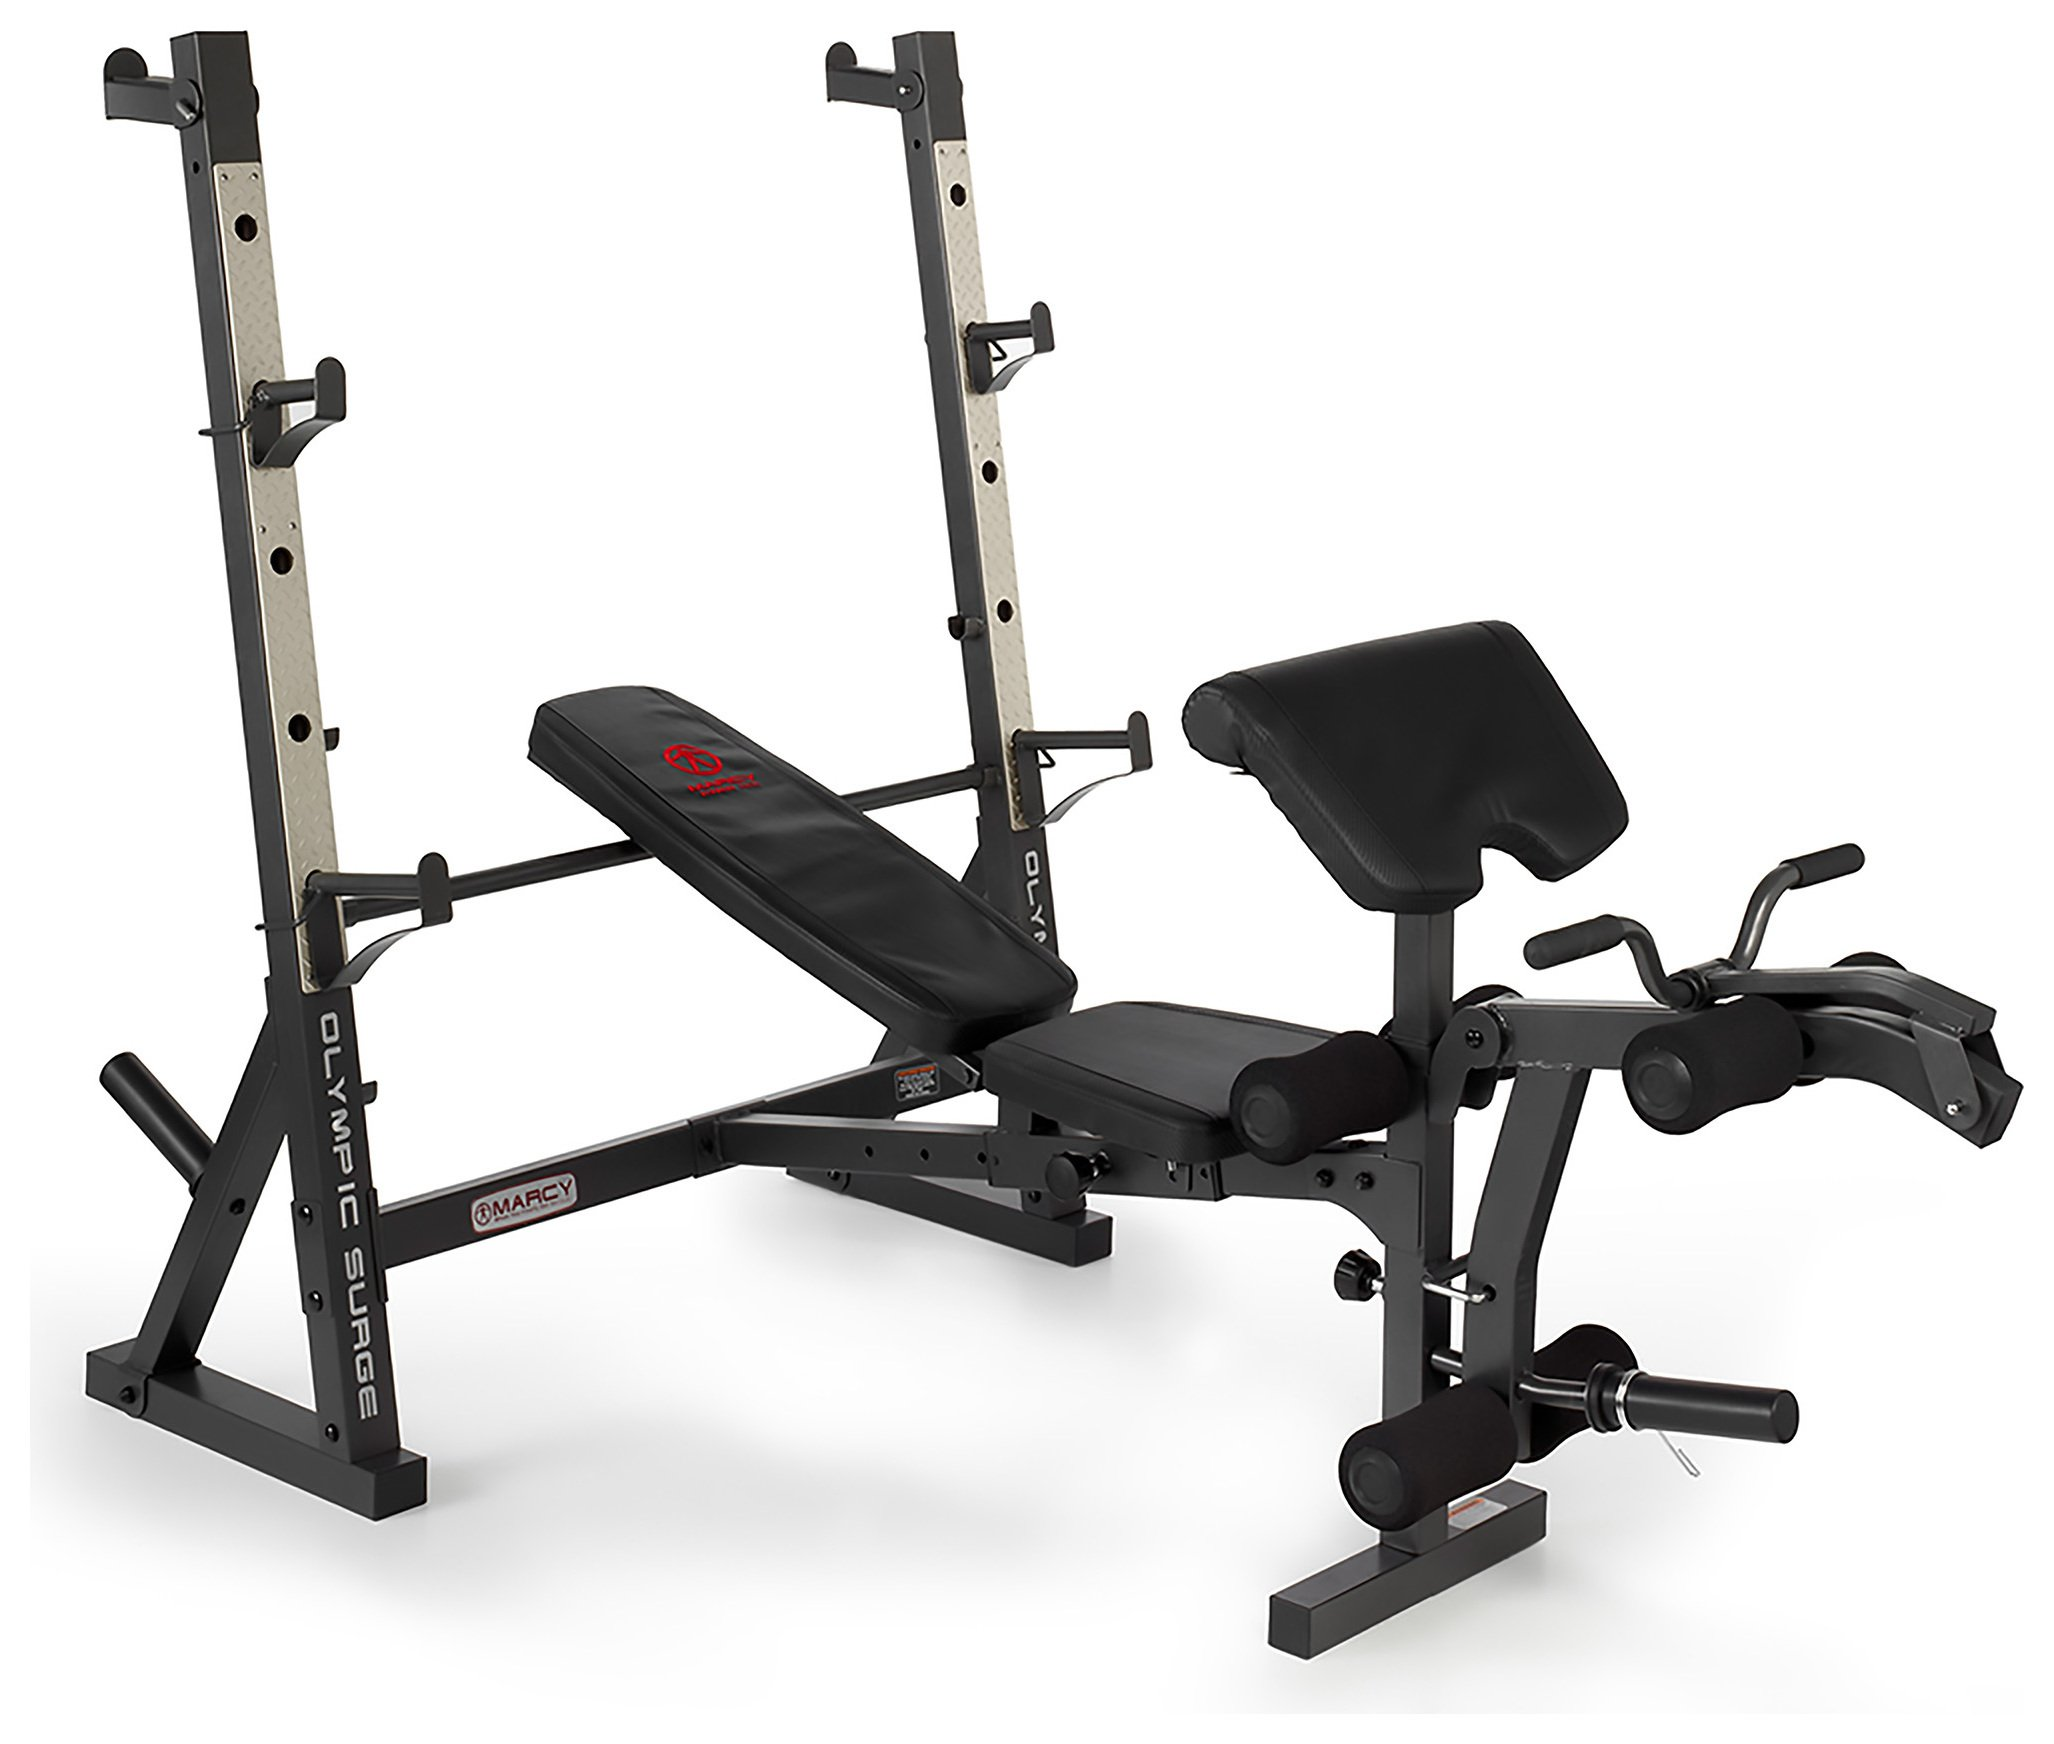 Marcy Diamond Elite Olympic Weight Bench Review